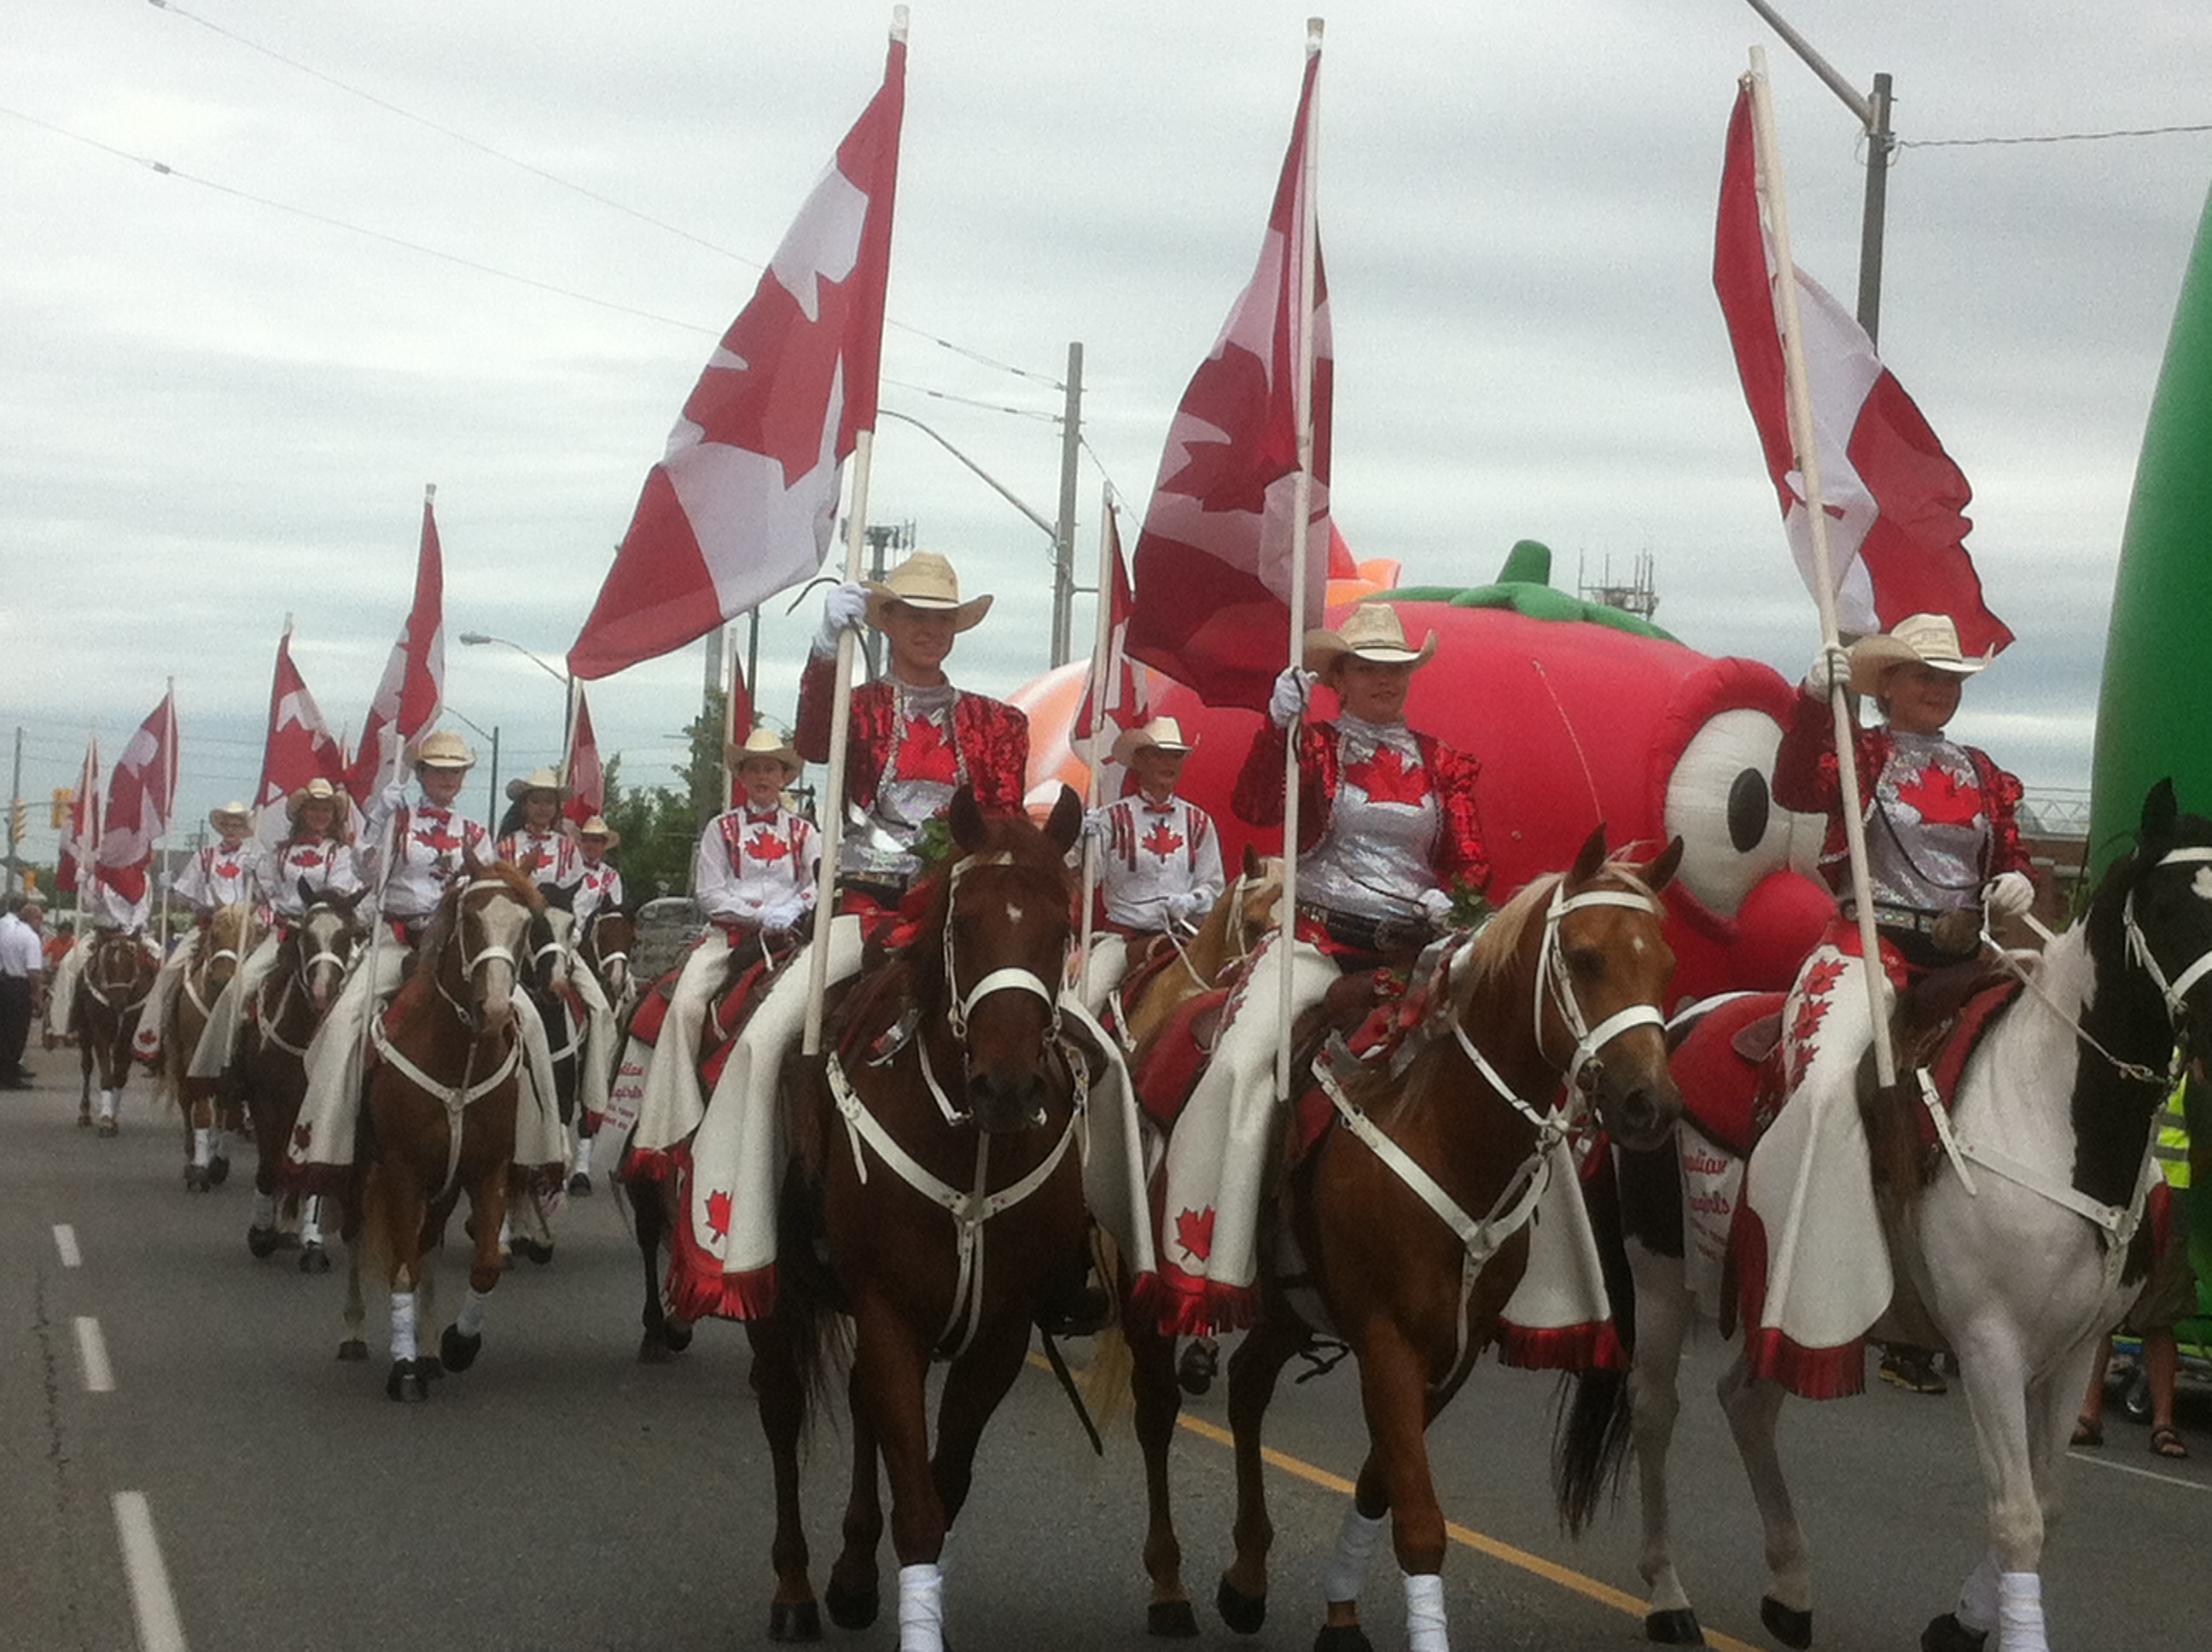 Horses at Windsor's 2014 Canada Day Parade. (Photo by Adelle Loiselle.)